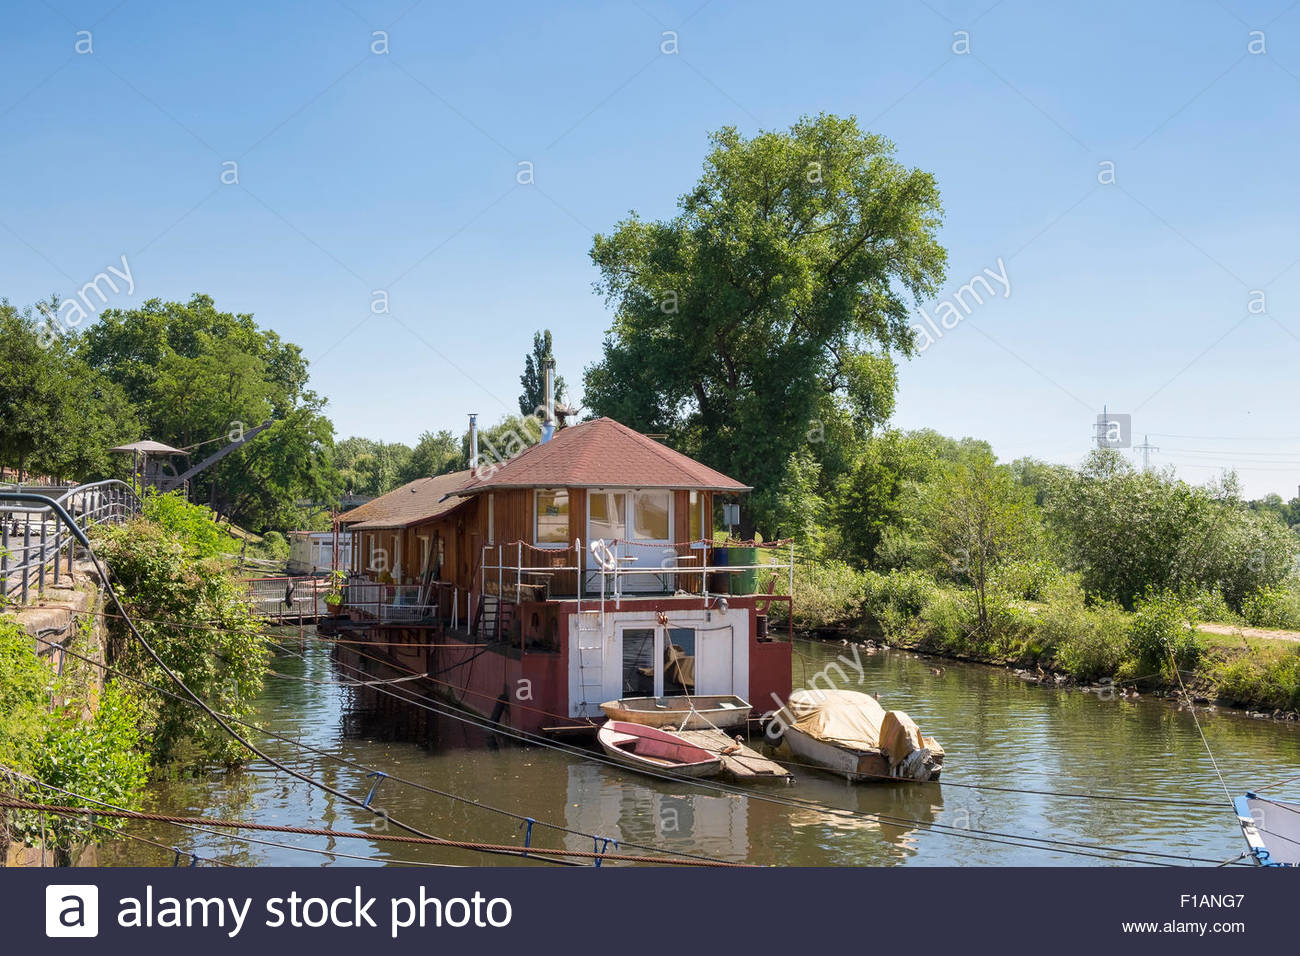 Germany, Hesse, Frankfurt-Hoechst, House boat on Nidda river - Stock Image